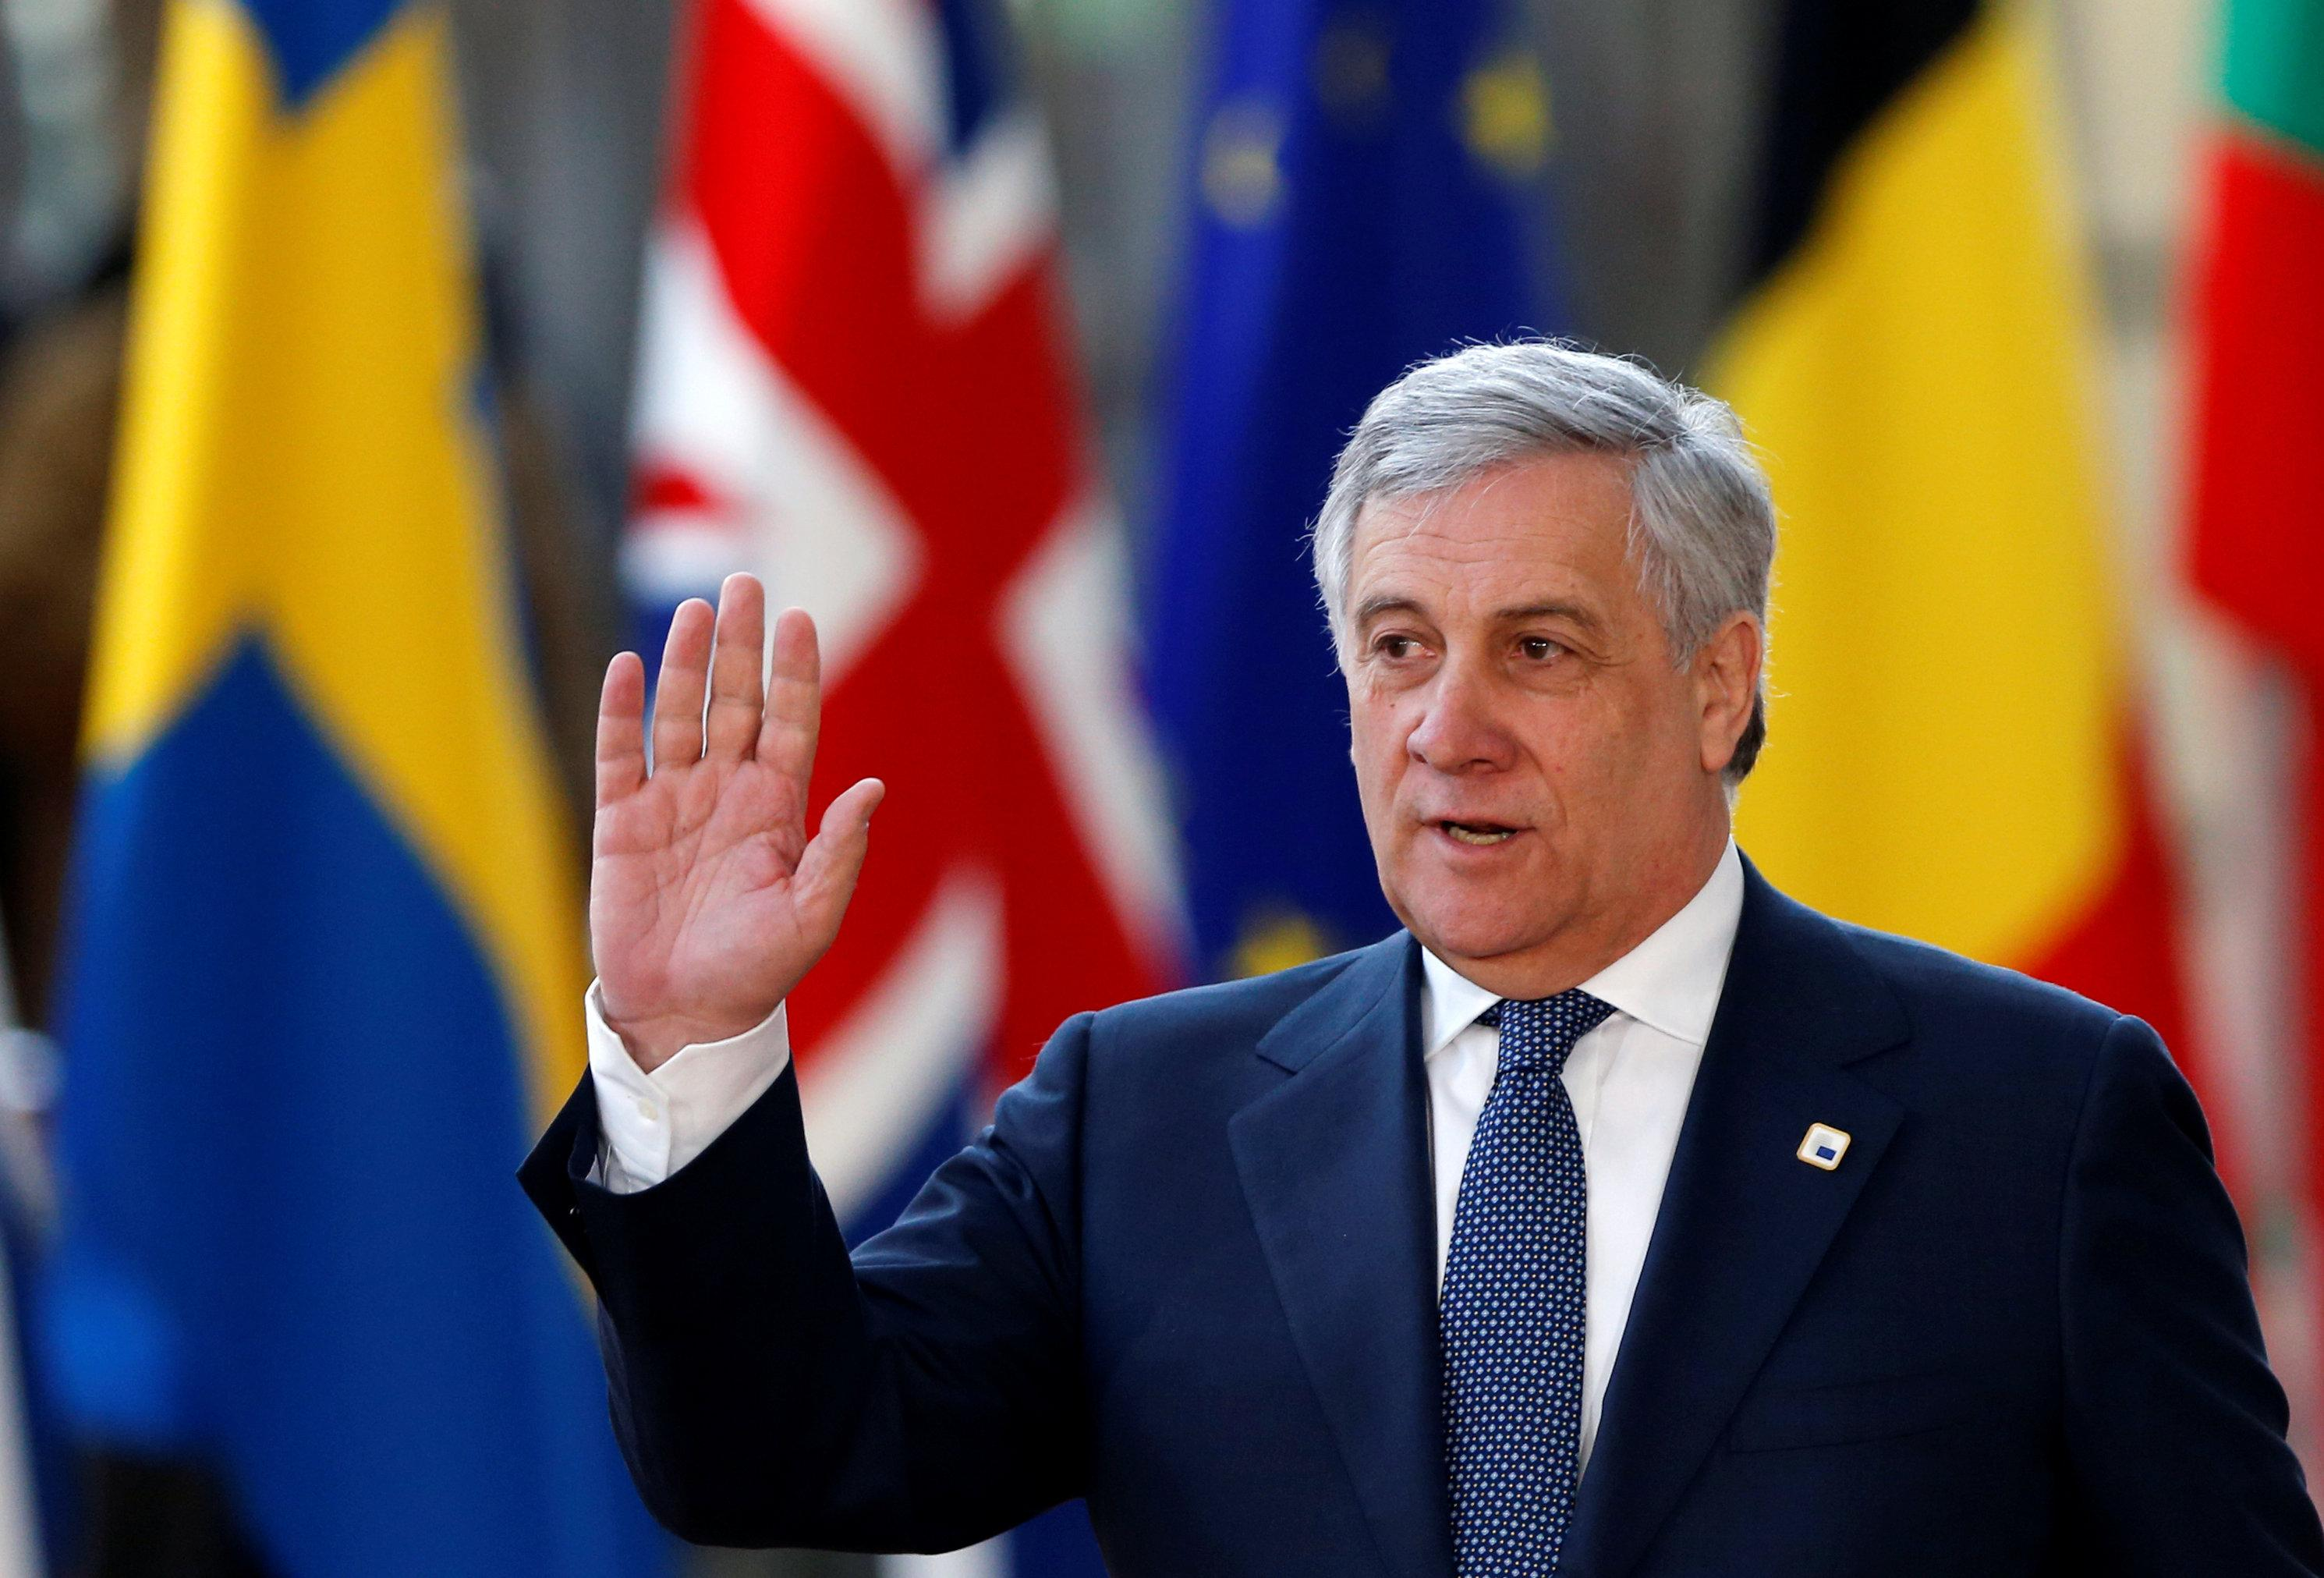 EU-UK trade deal could be deeper, but modelled on Canada, Japan accords - Tajani